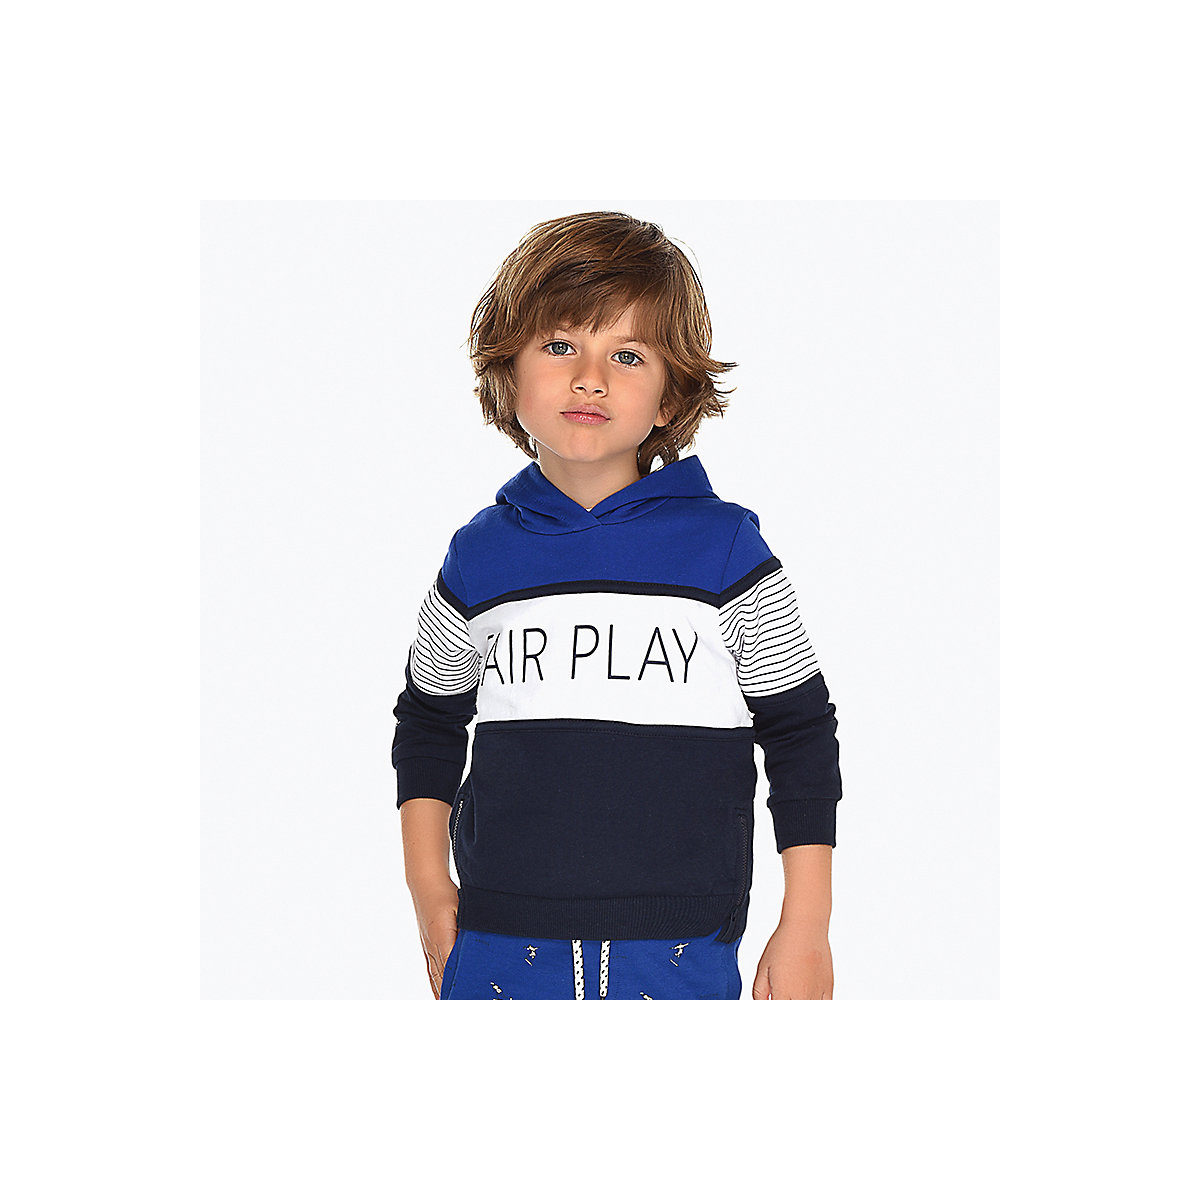 Sweaters MAYORAL 10685421 sweatshirt hoodies for kids cardigan clothes for girls and boys cardigan for boys kotmarkot 15508 kid clothes